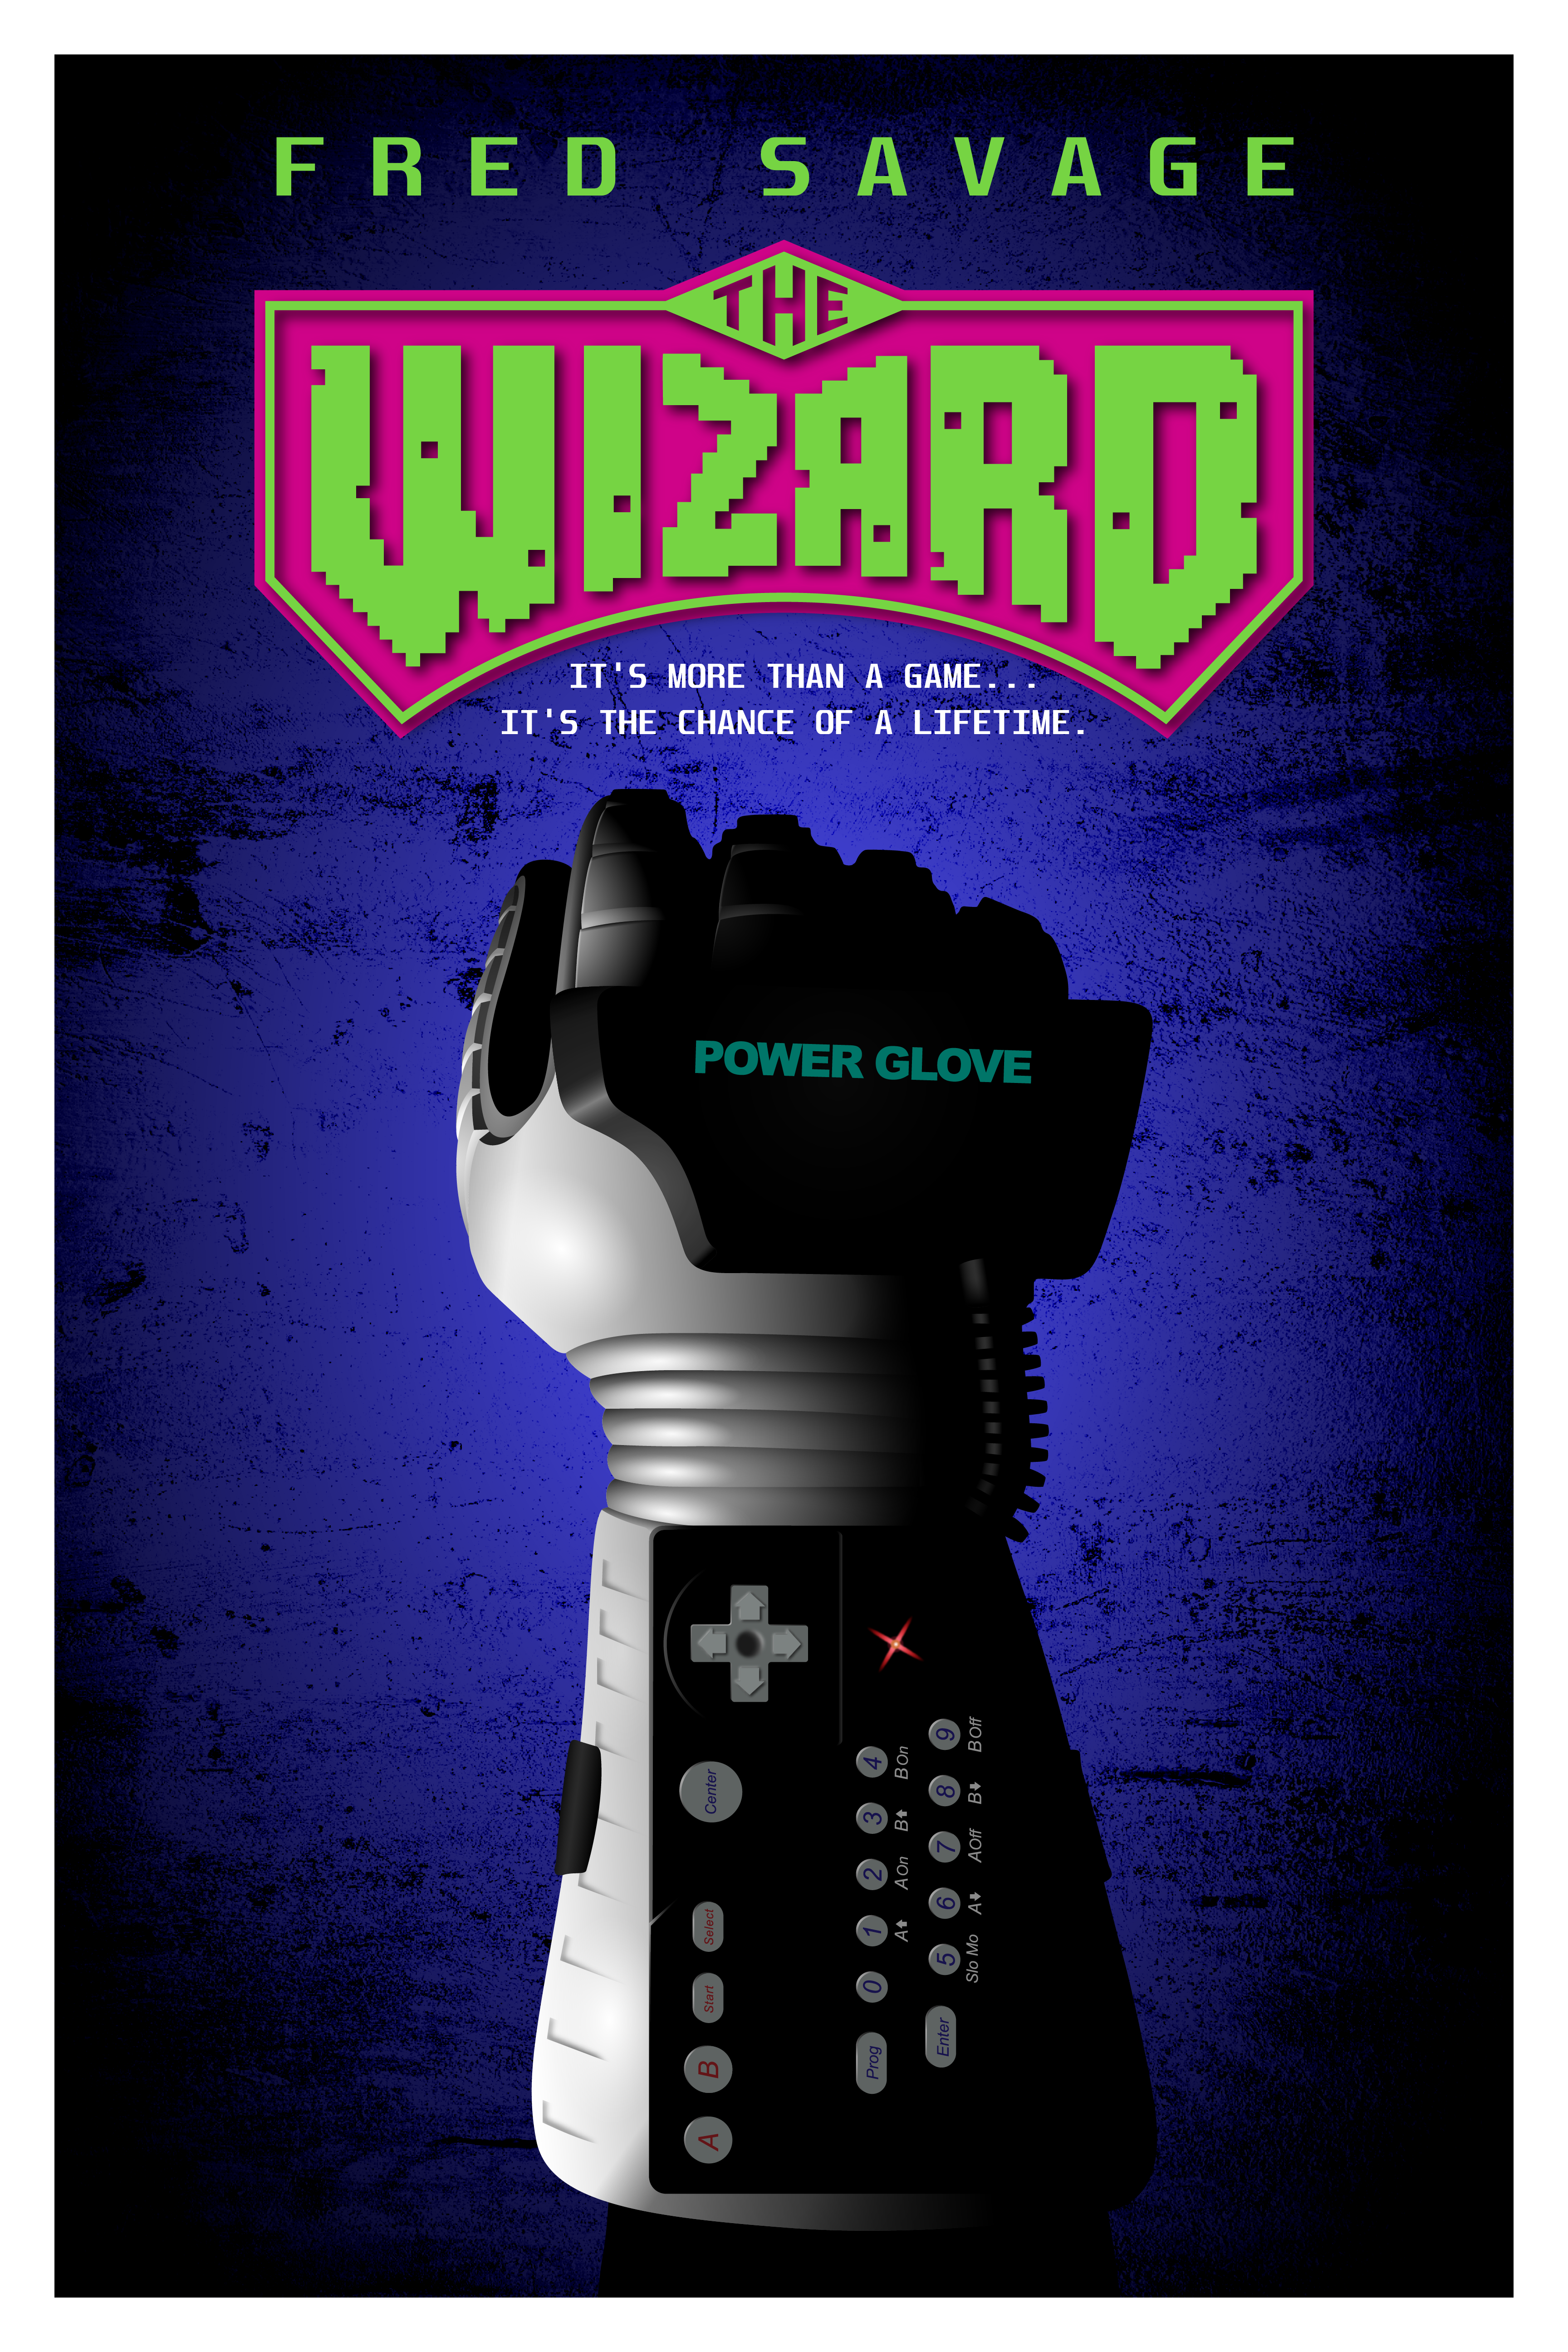 The Wizard (1989) Movie Poster Fan Art Vector Design By Me